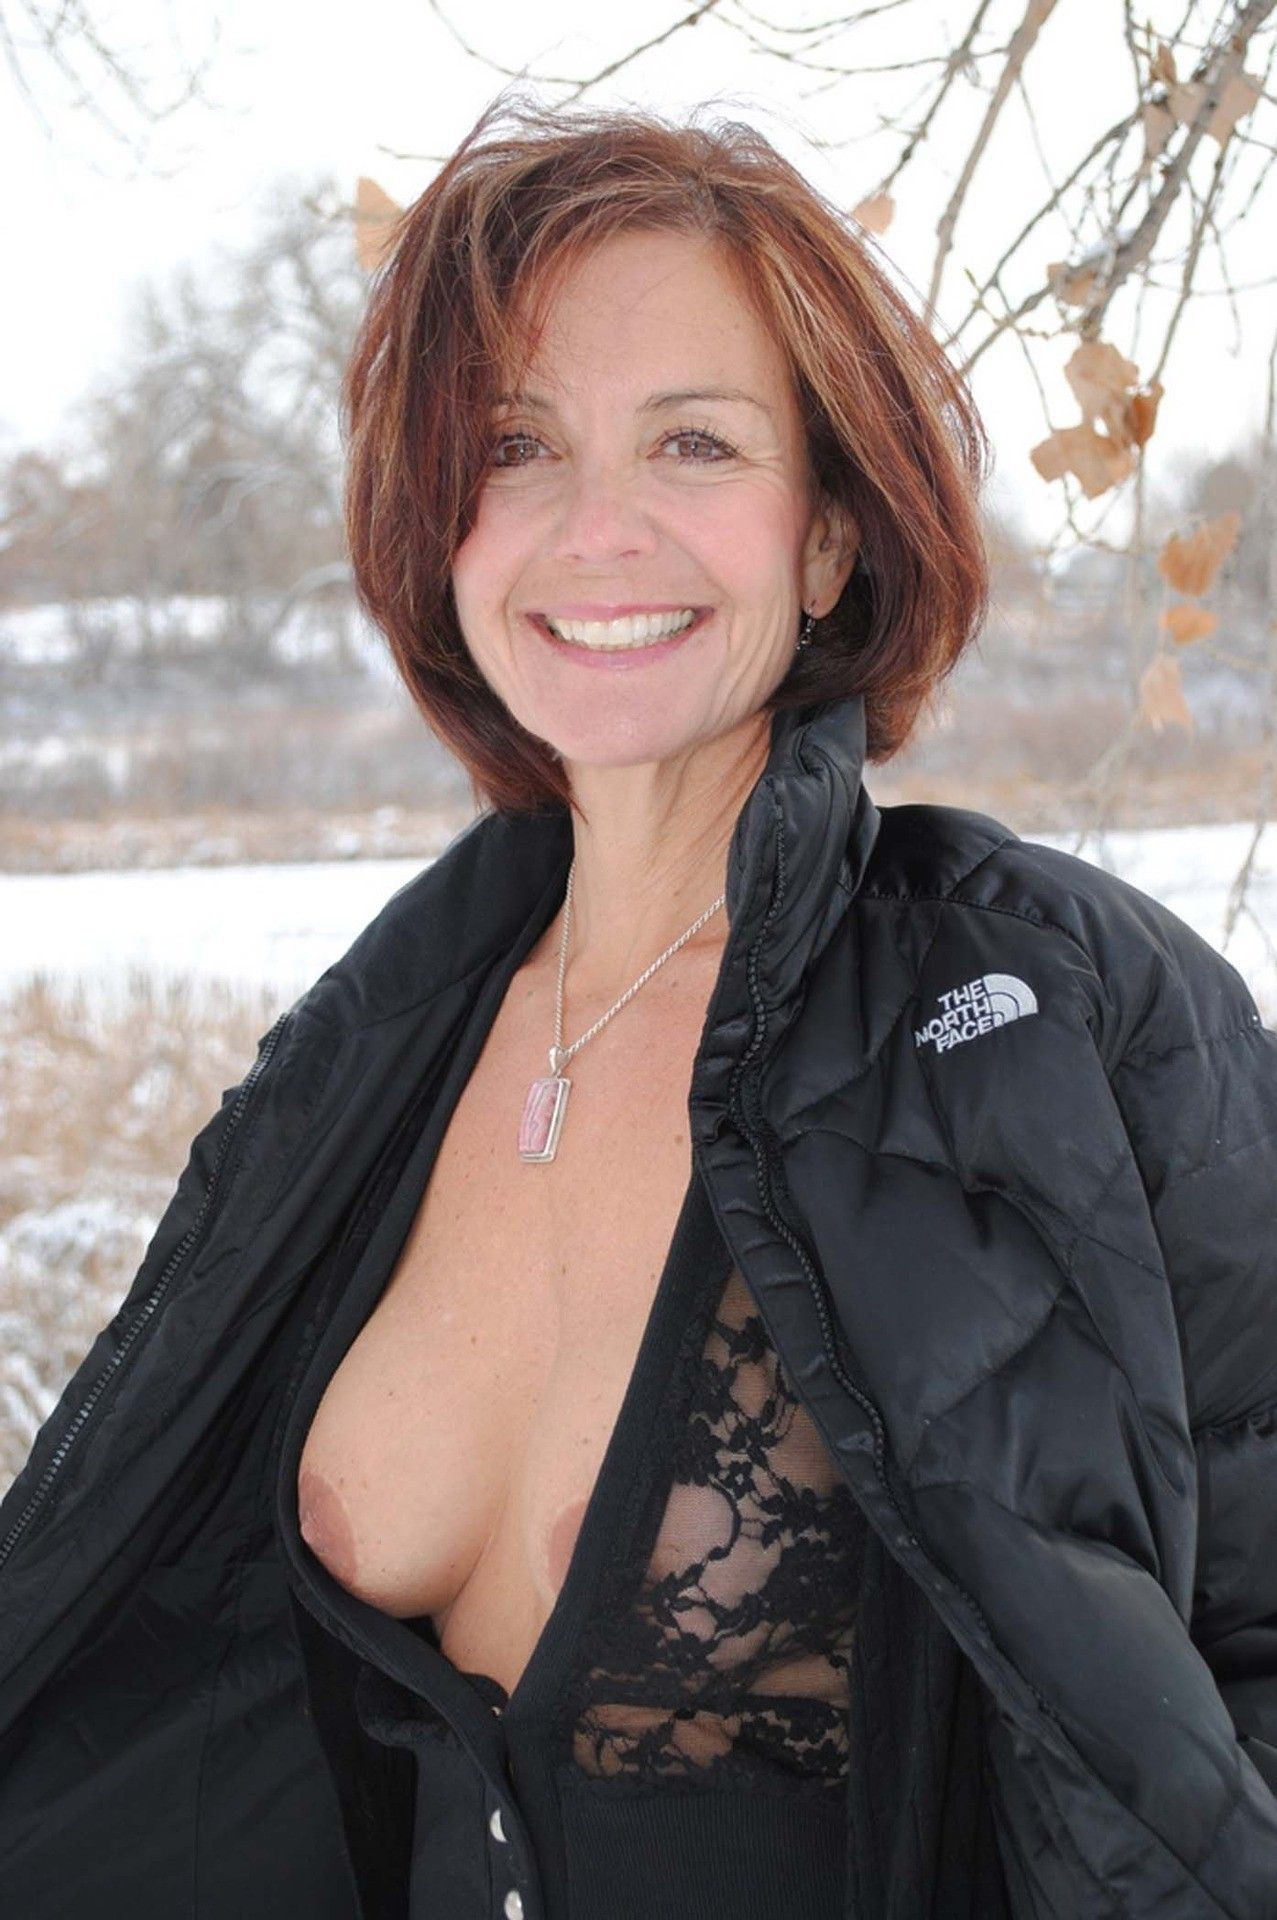 mature-hott | milf worship | pinterest | woman